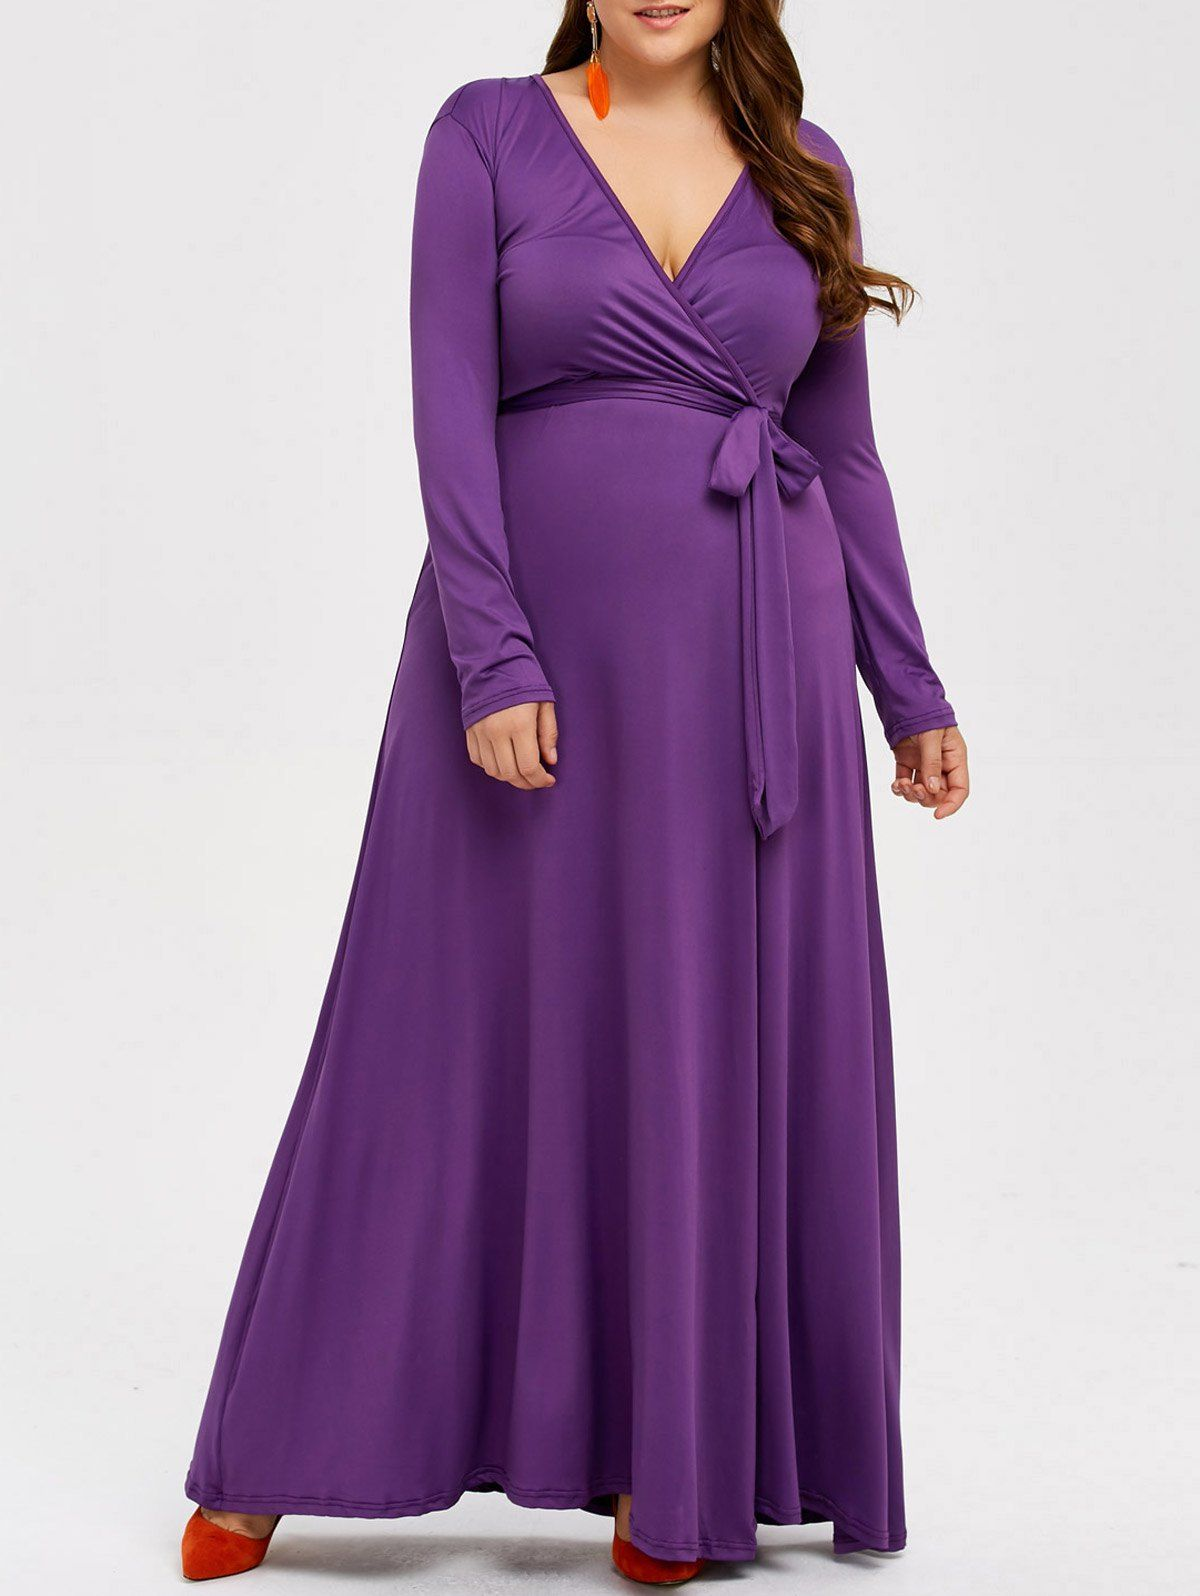 $15.65 Plus Size Wrap Maxi Dress | Purple maxi dress, Plain ...